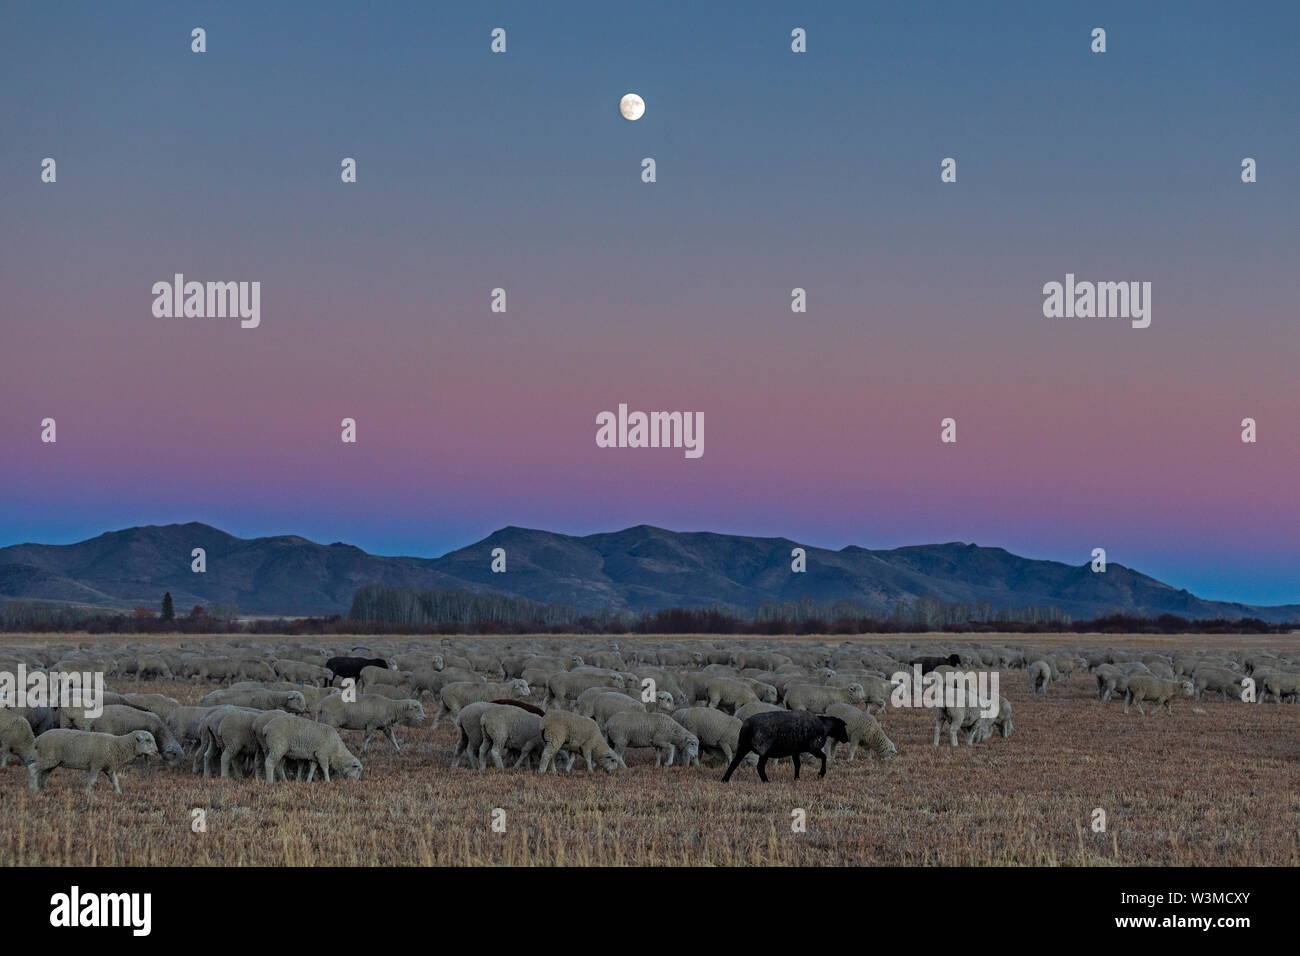 Flock of sheep at sunset in Picabo, Idaho - Stock Image